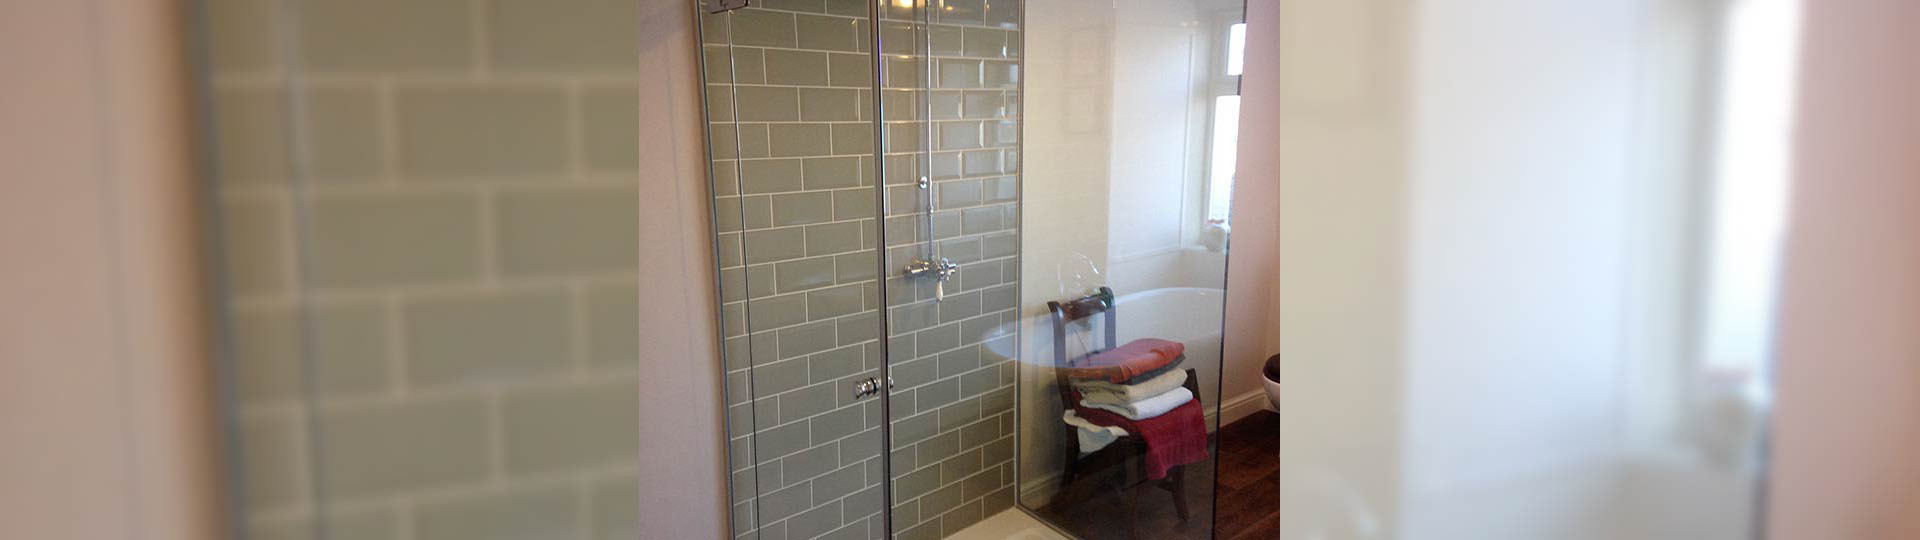 A glass shower